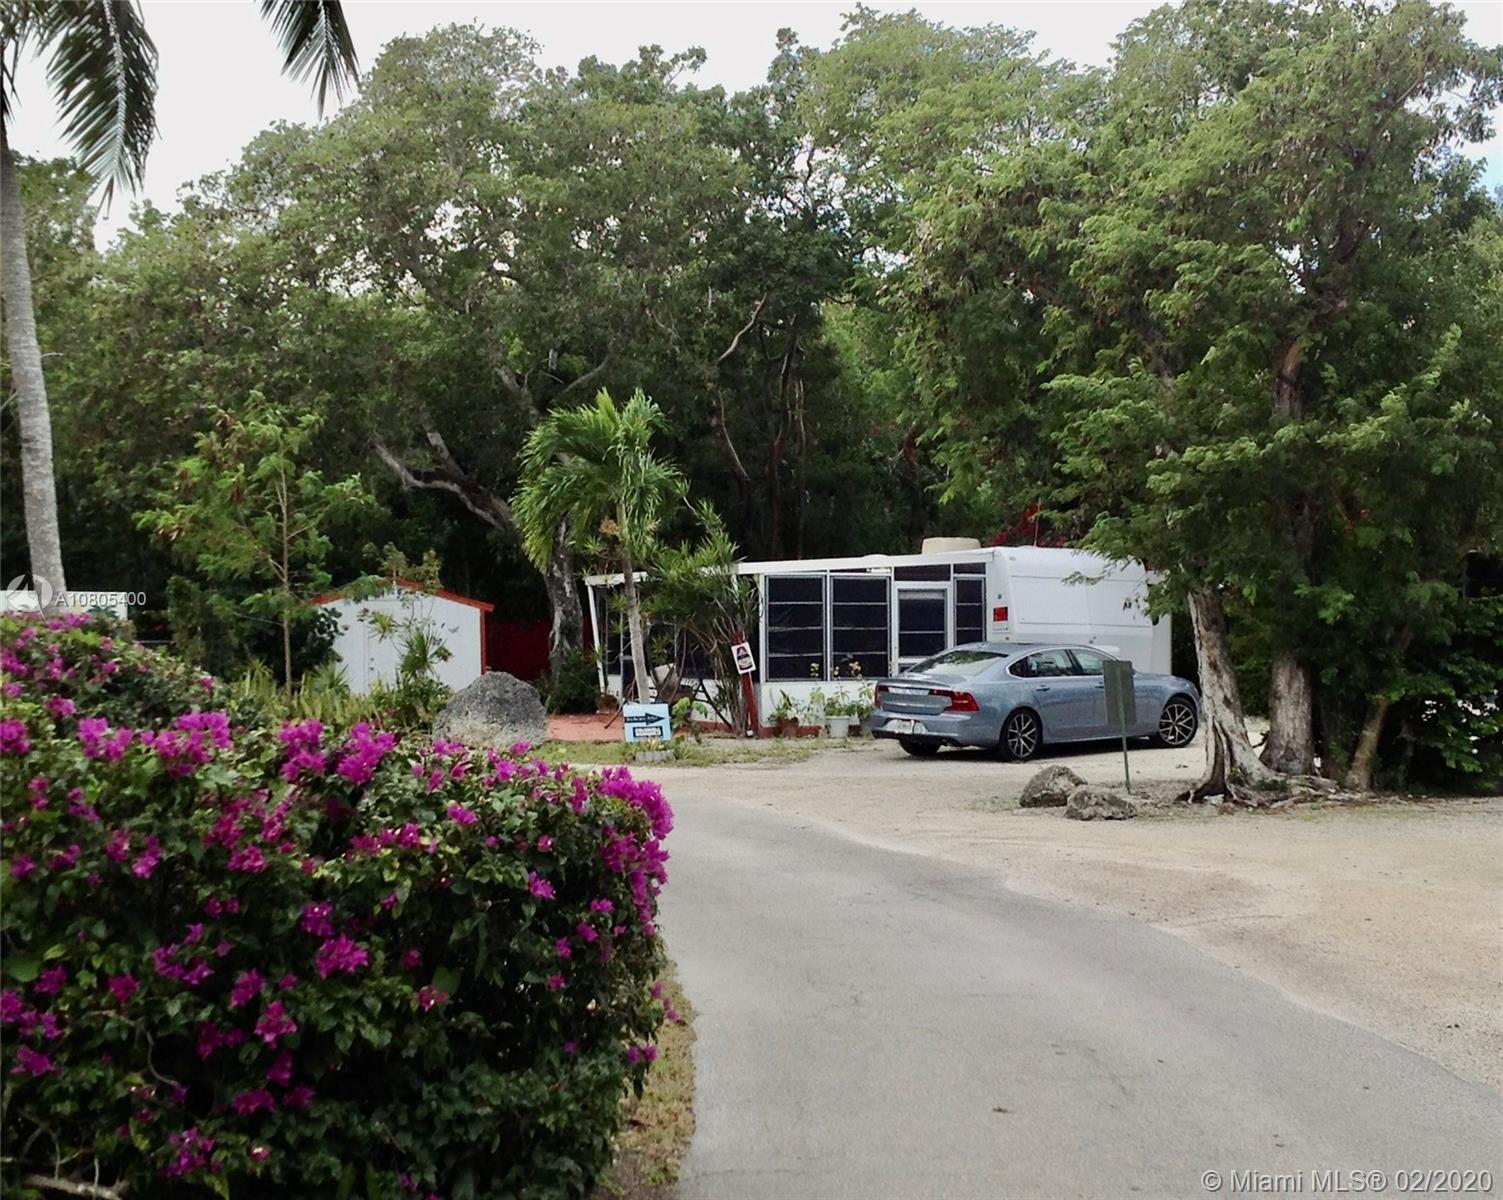 101551 LOT #170 Overseas Hwy, Key Largo, FL 33037 - Key Largo, FL real estate listing